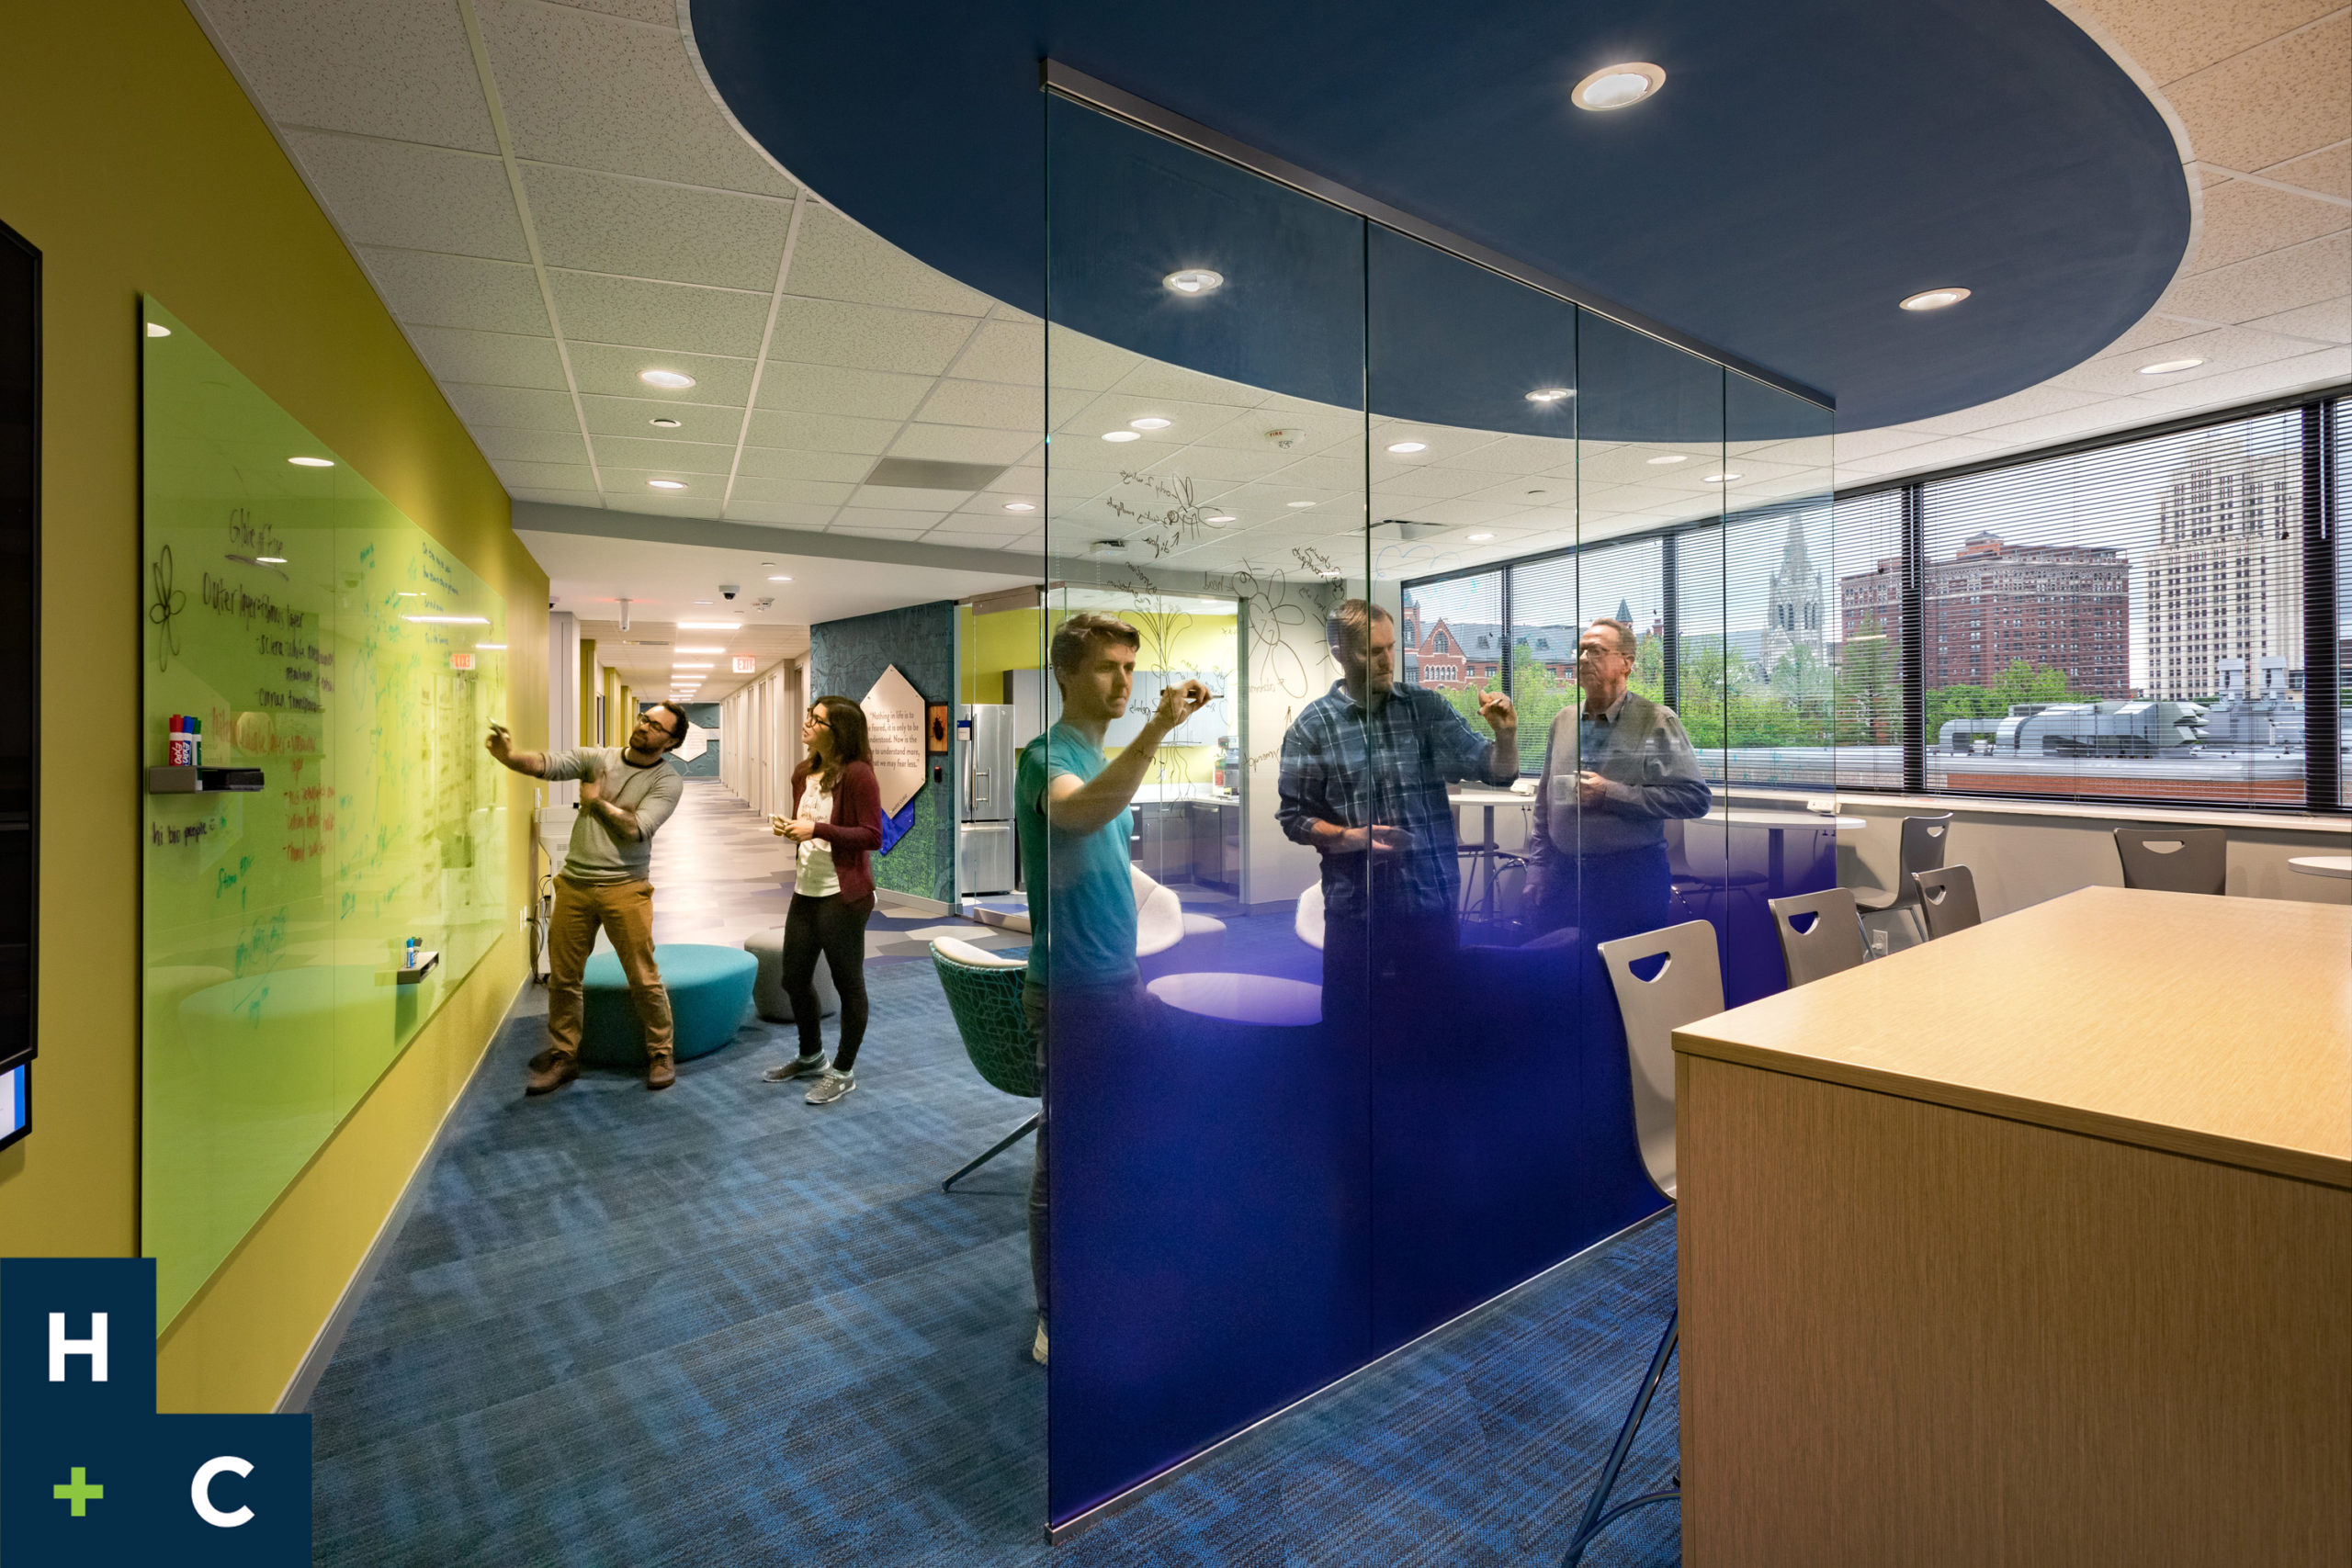 Can a Building Really Increase Student Retention & Satisfaction?